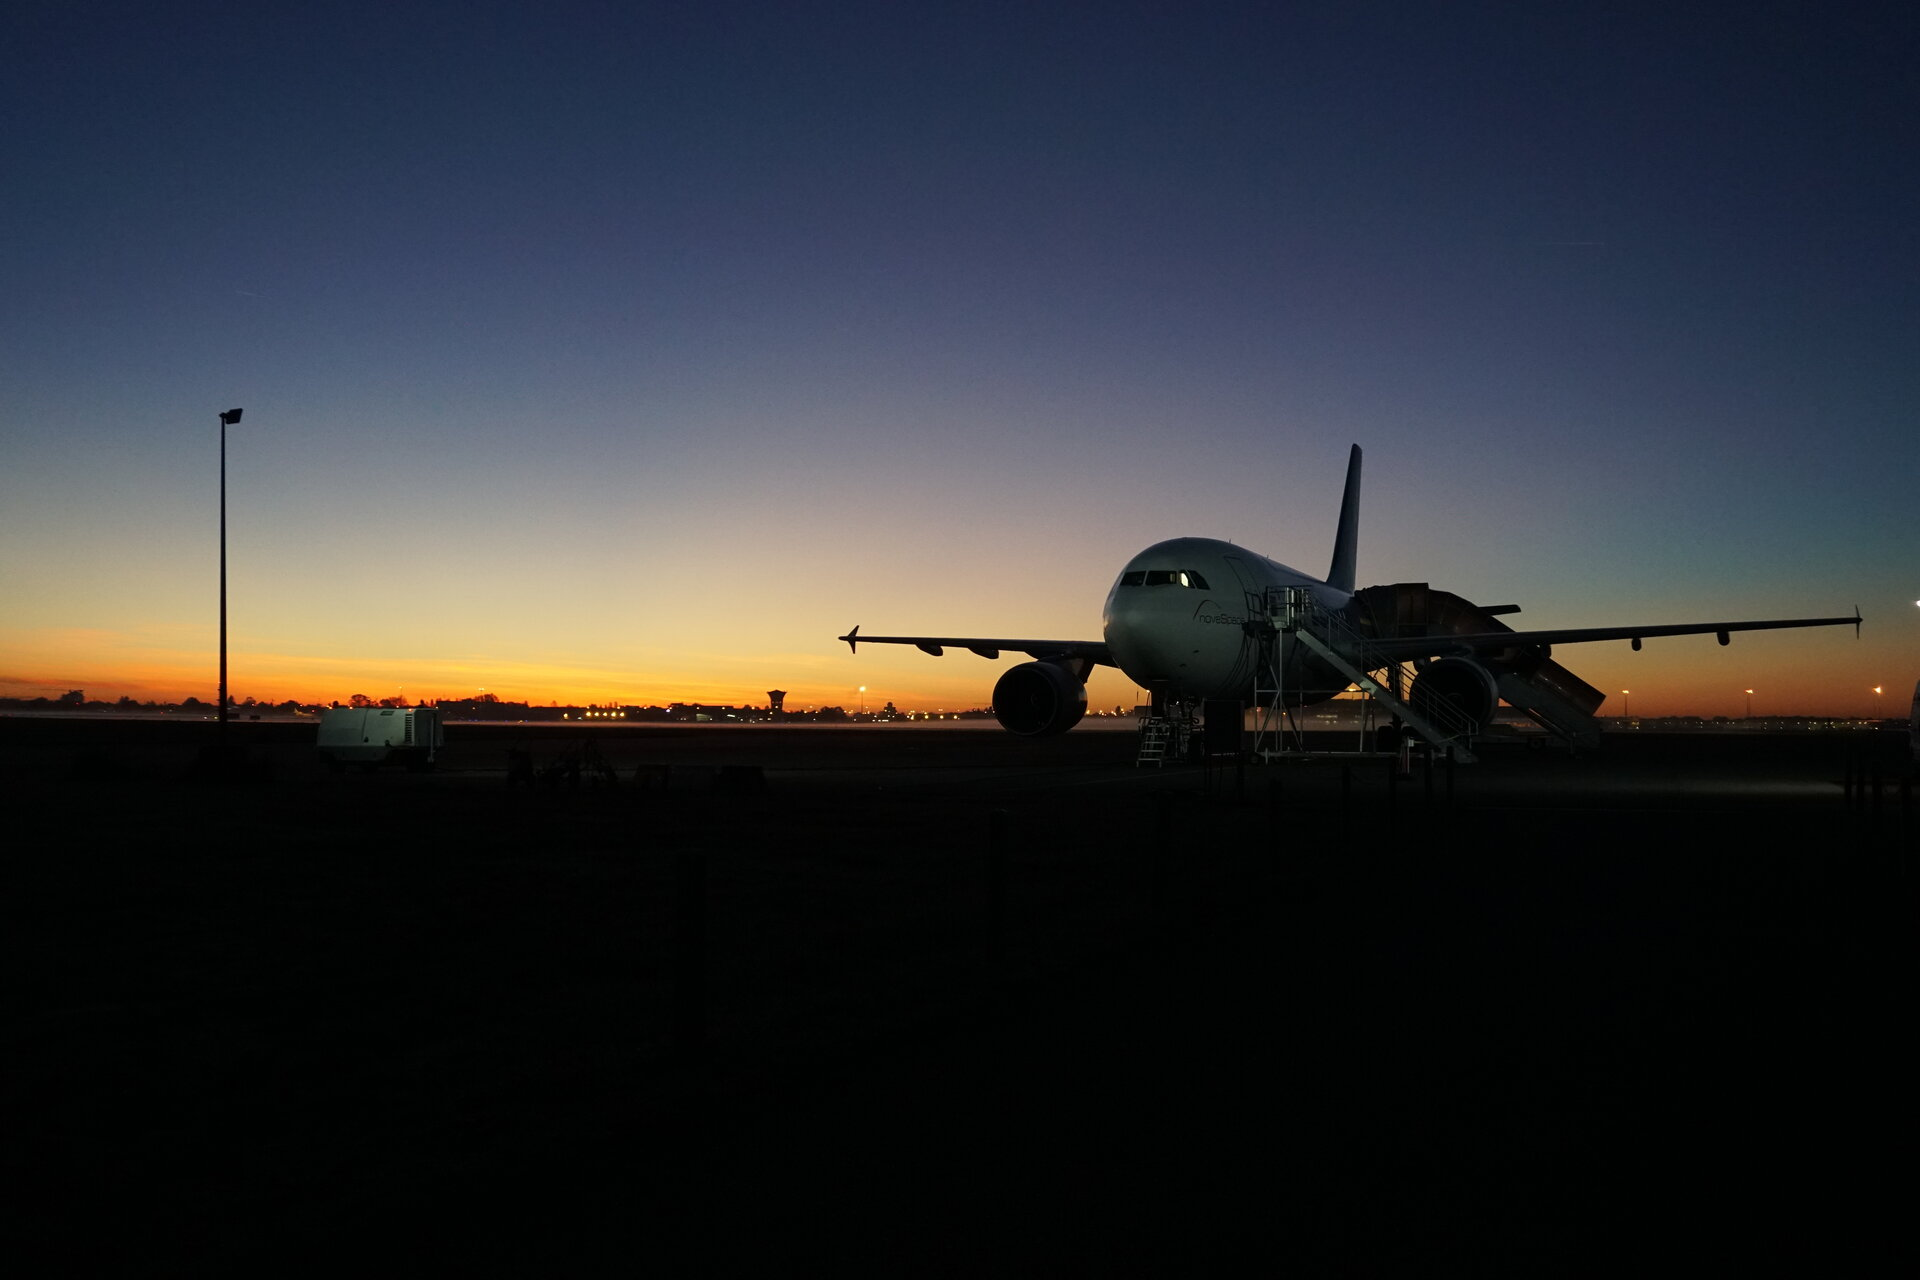 A310 at sunrise